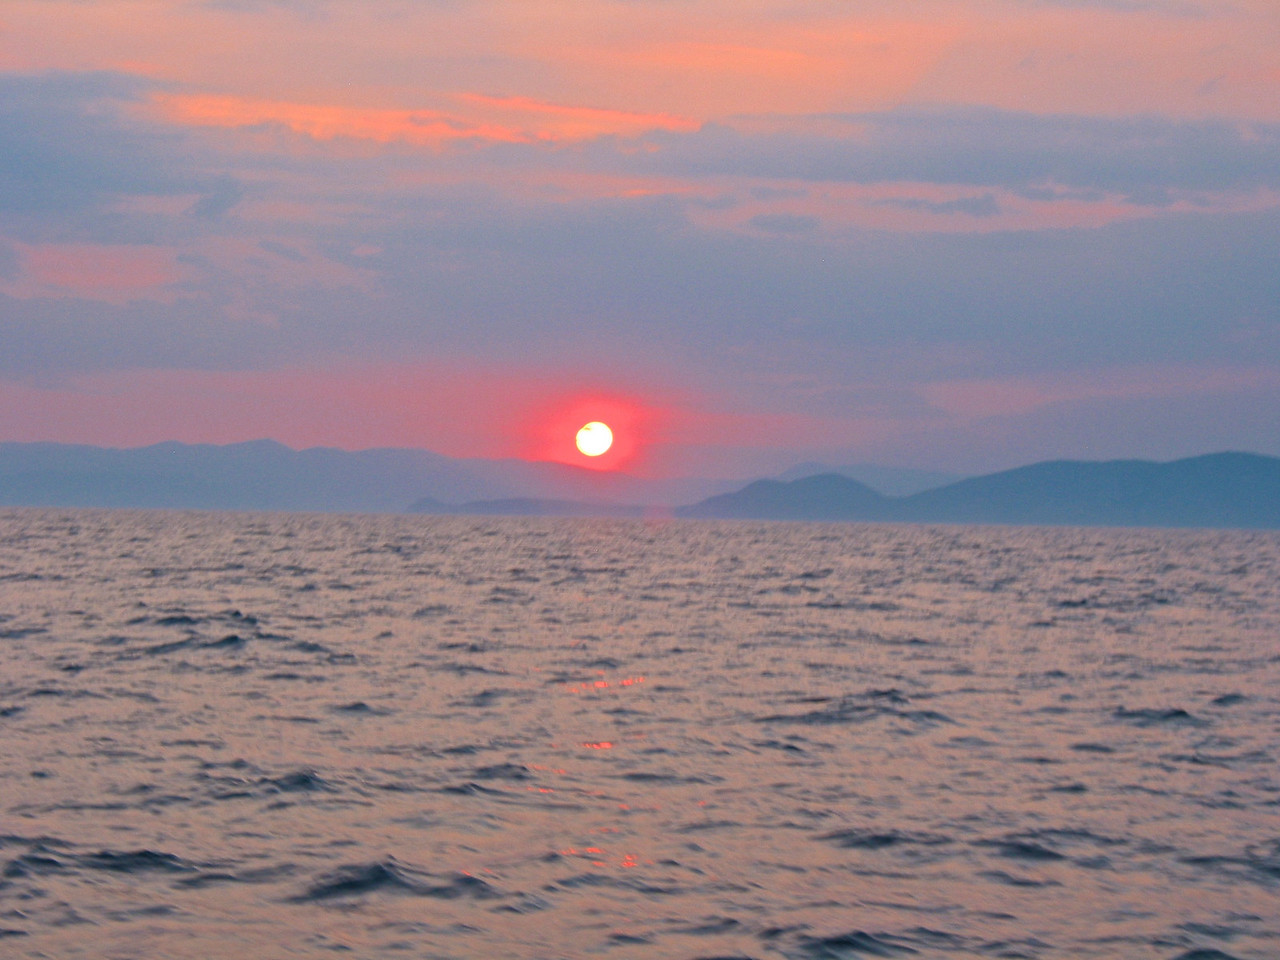 Sunset over the Aegean.